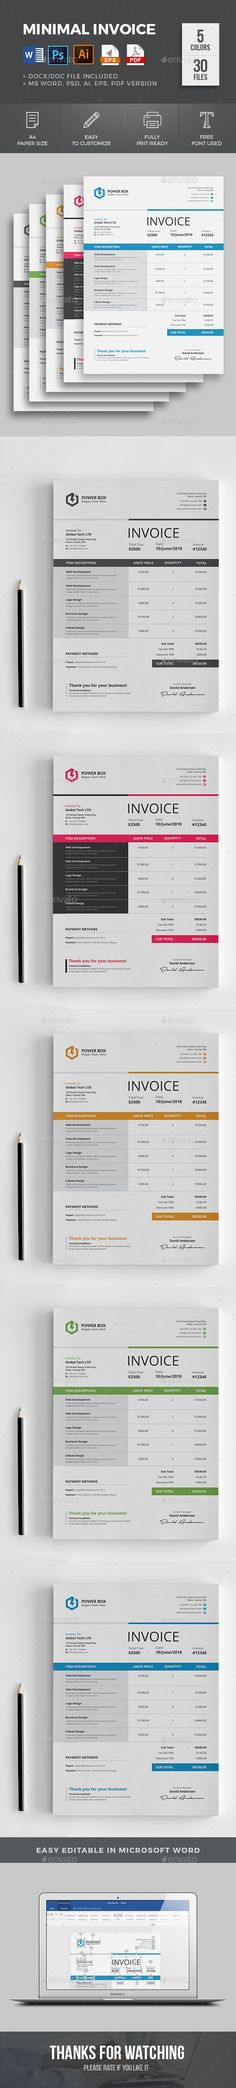 #Invoice - #Proposals & Invoices #Stationery Download here: https://graphicriver.net/item/invoice/19530976?ref=alena994